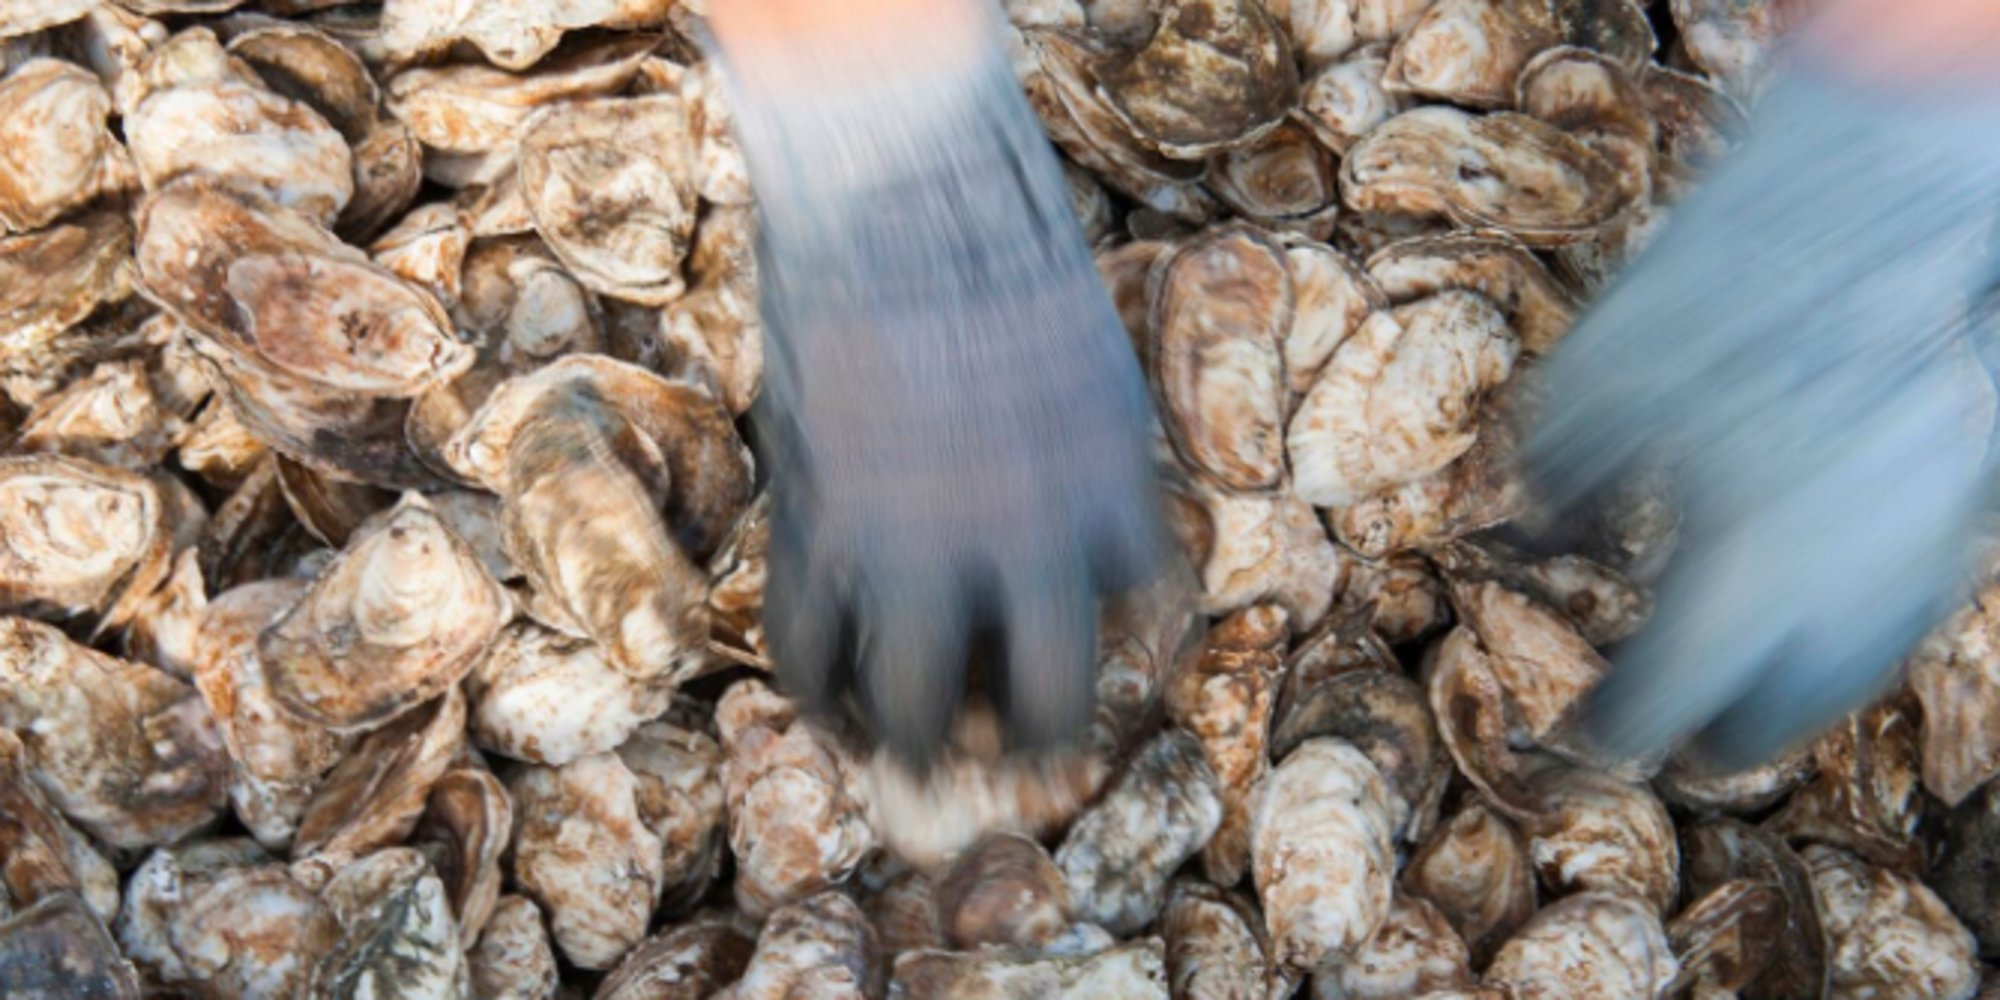 Trump's proposed cuts to Chesapeake Bay cleanup alarm the revived oyster industry https://t.co/hrImBKkv1B https://t.co/PxbOG9bf1Y